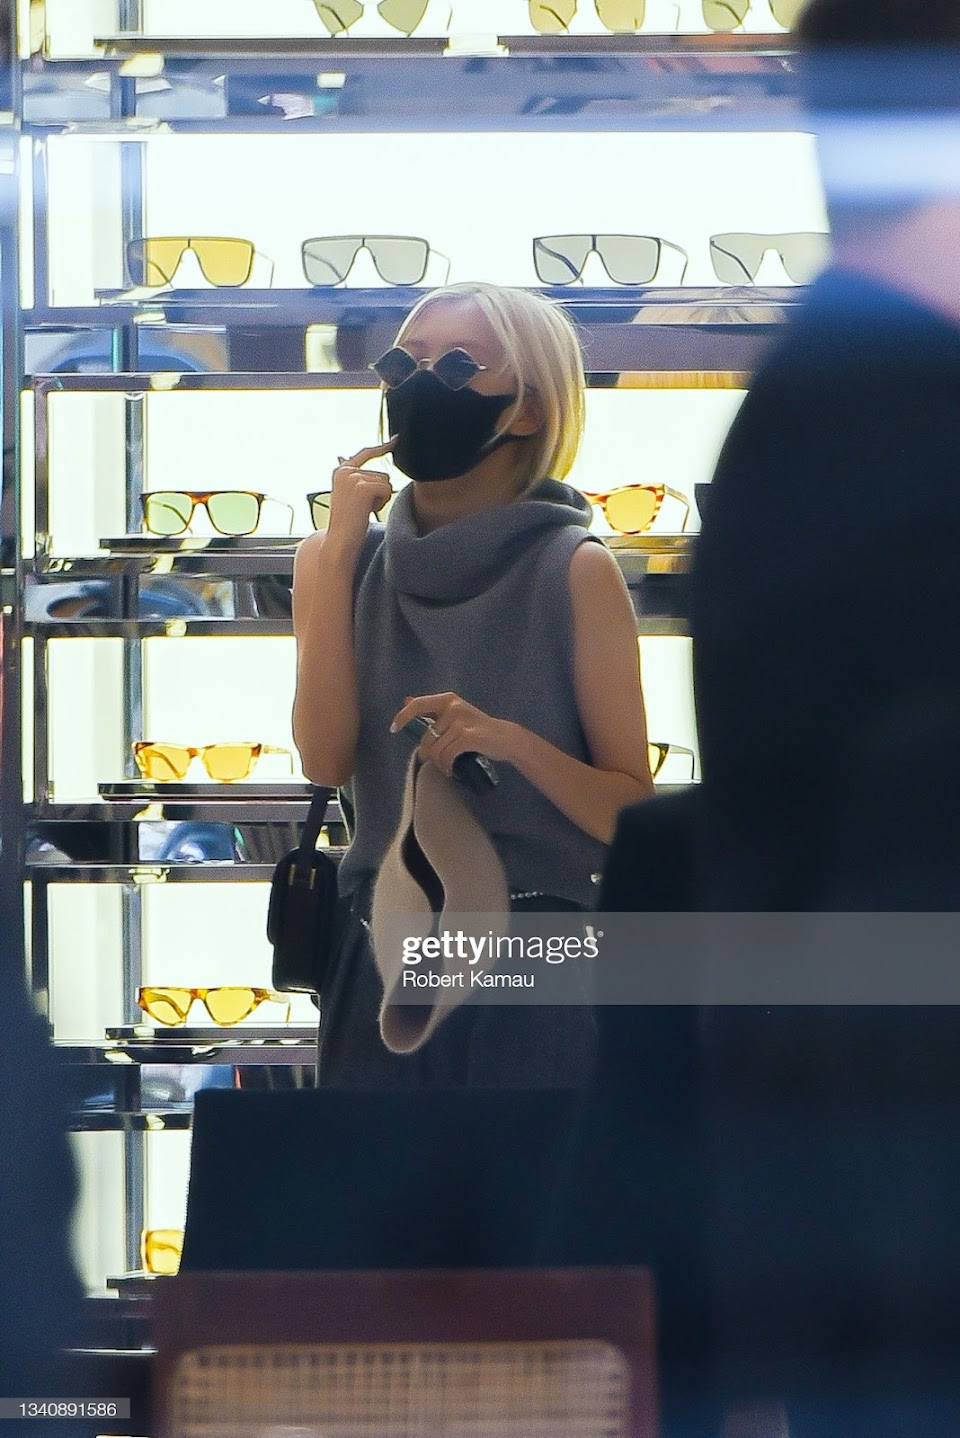 gettyimages-1340891586-2048x2048